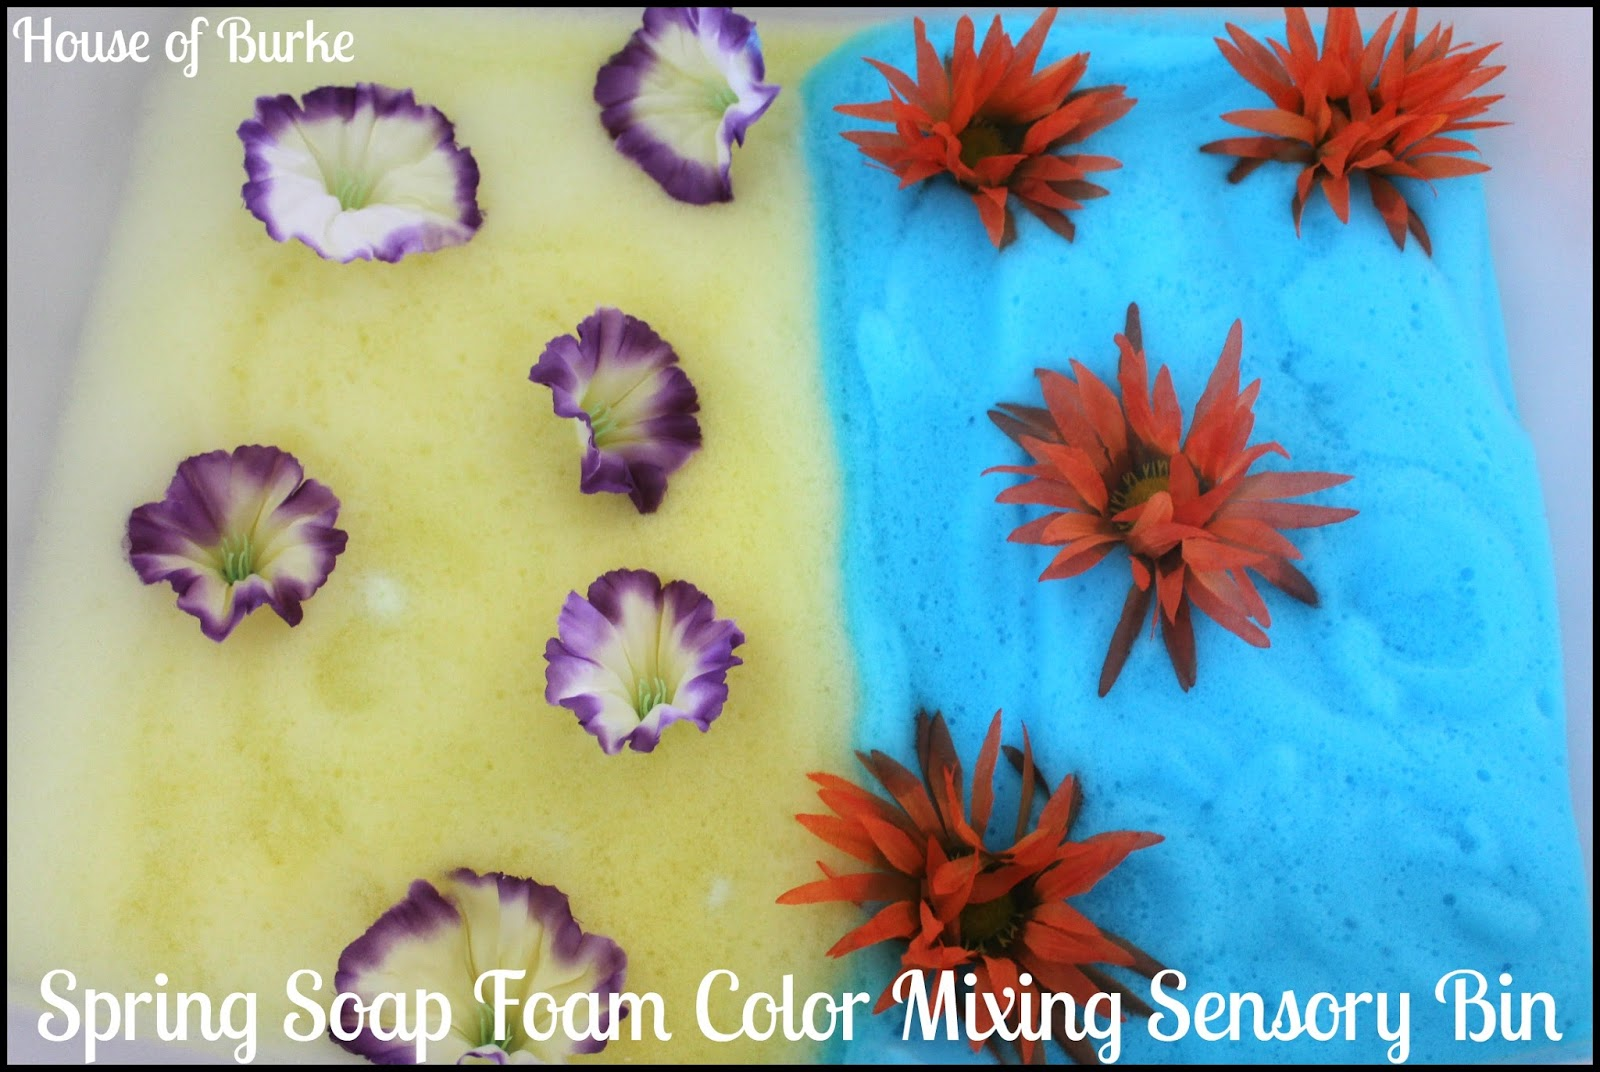 Spring soap foam color mixing sensory bin from House of Burke